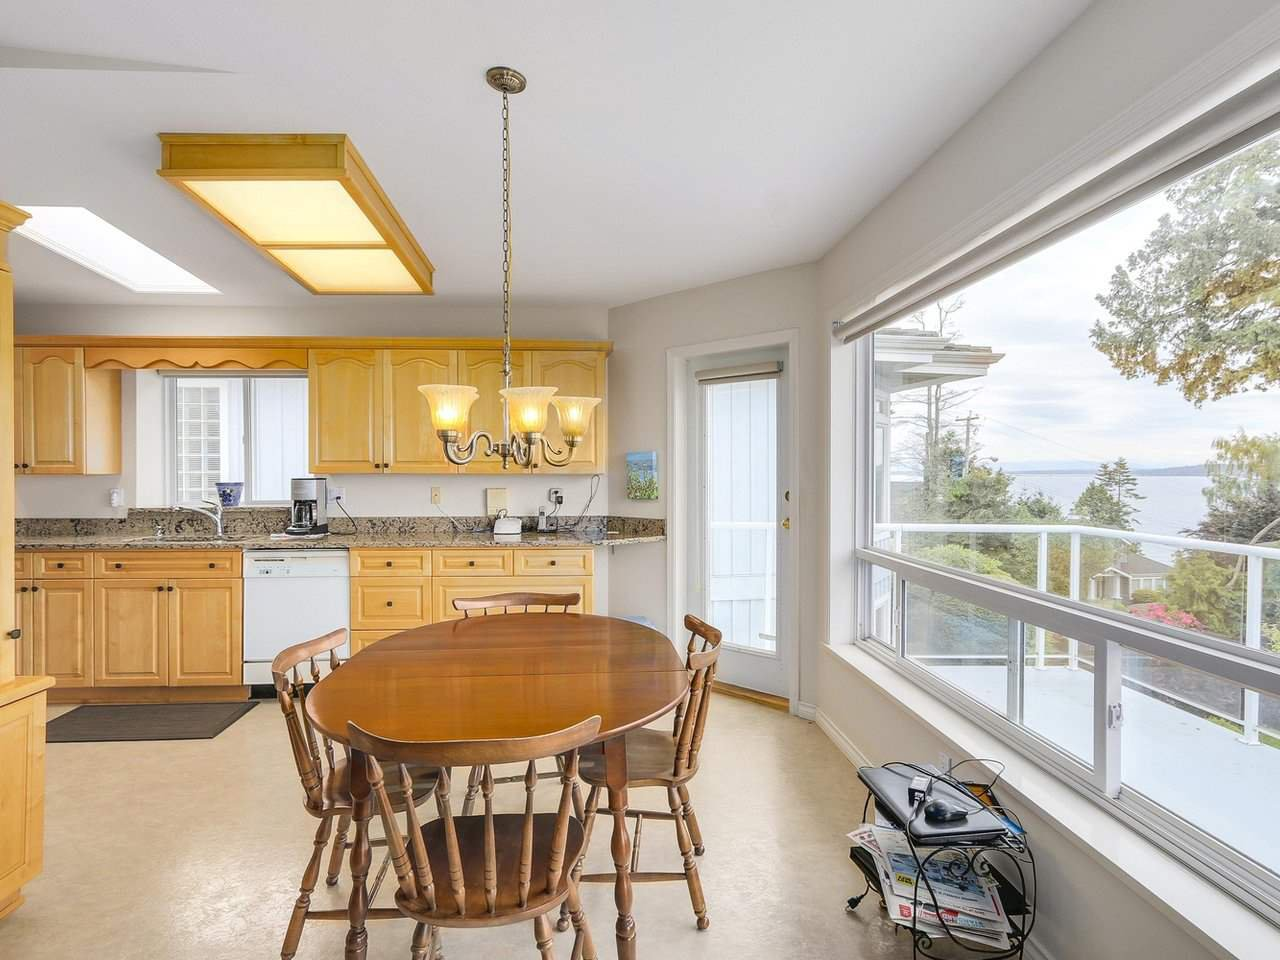 Photo 6: Photos: 1325 132B Street in Surrey: Crescent Bch Ocean Pk. House for sale (South Surrey White Rock)  : MLS®# R2185643